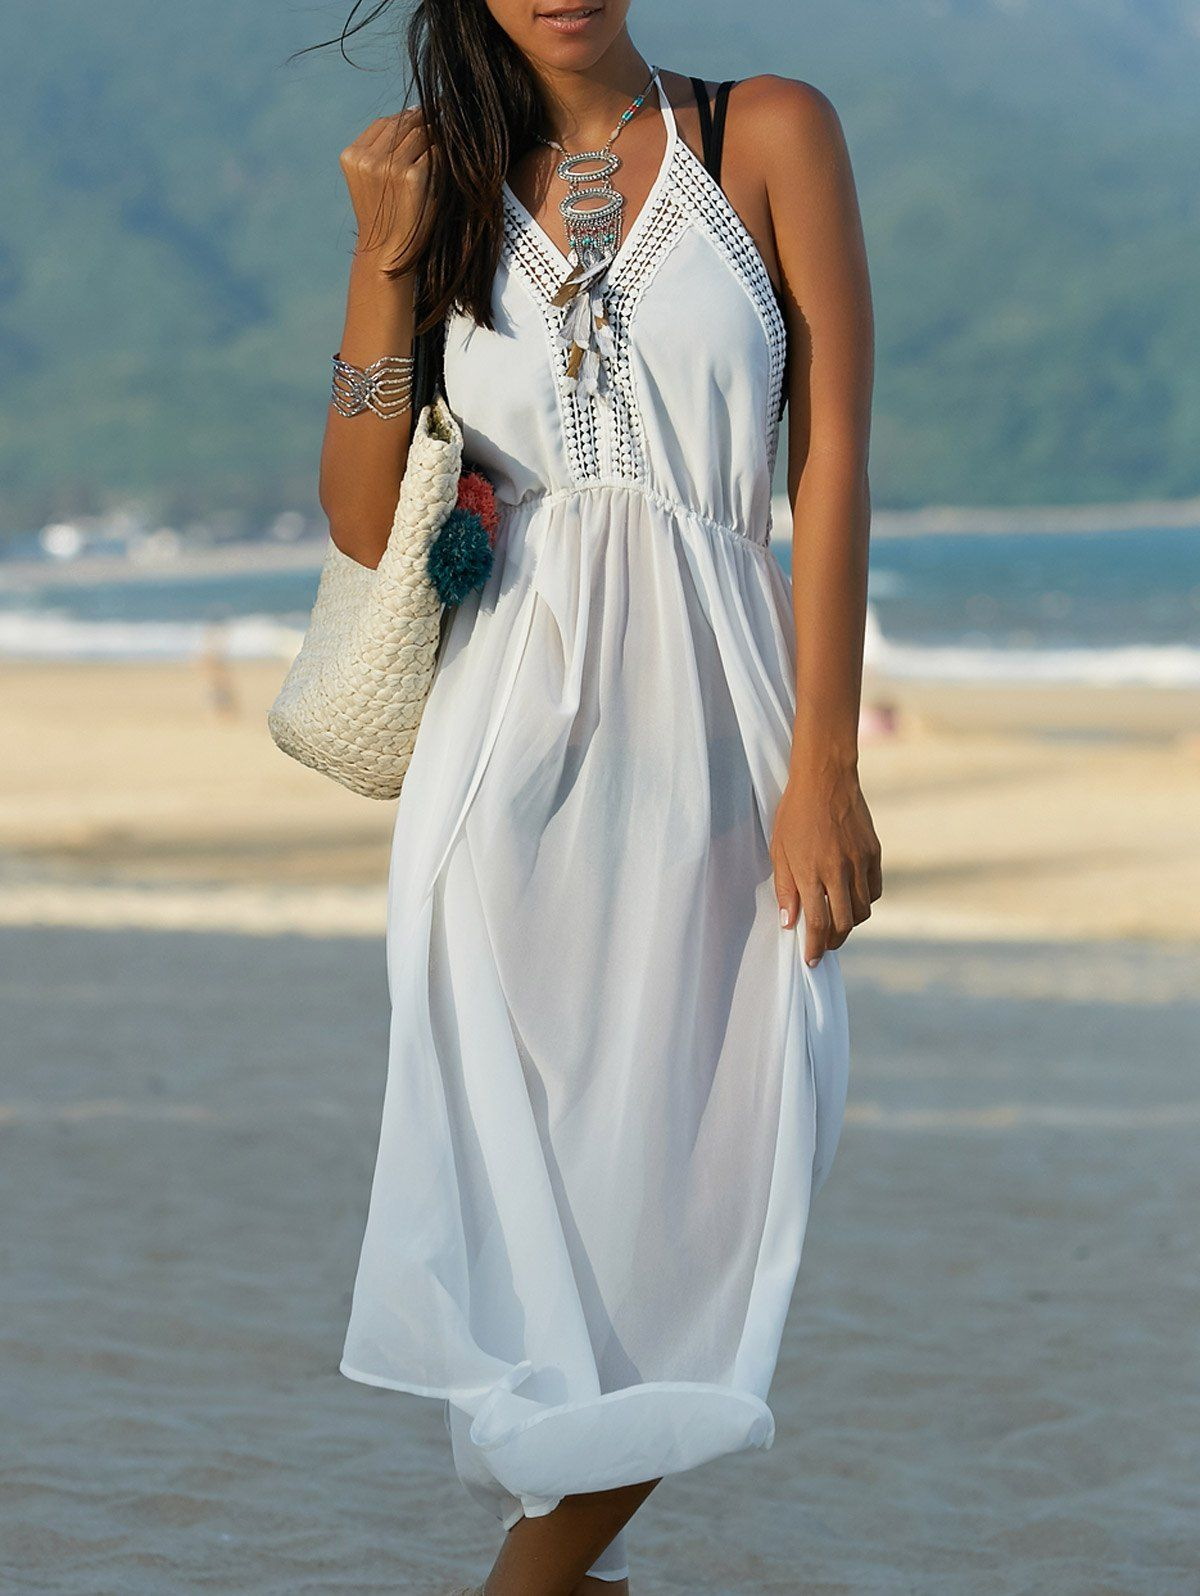 http://www.rosegal.com/bohemian-dresses/bohemian-halter-furcal-backless-solid-color-women-s-dress-497411.html